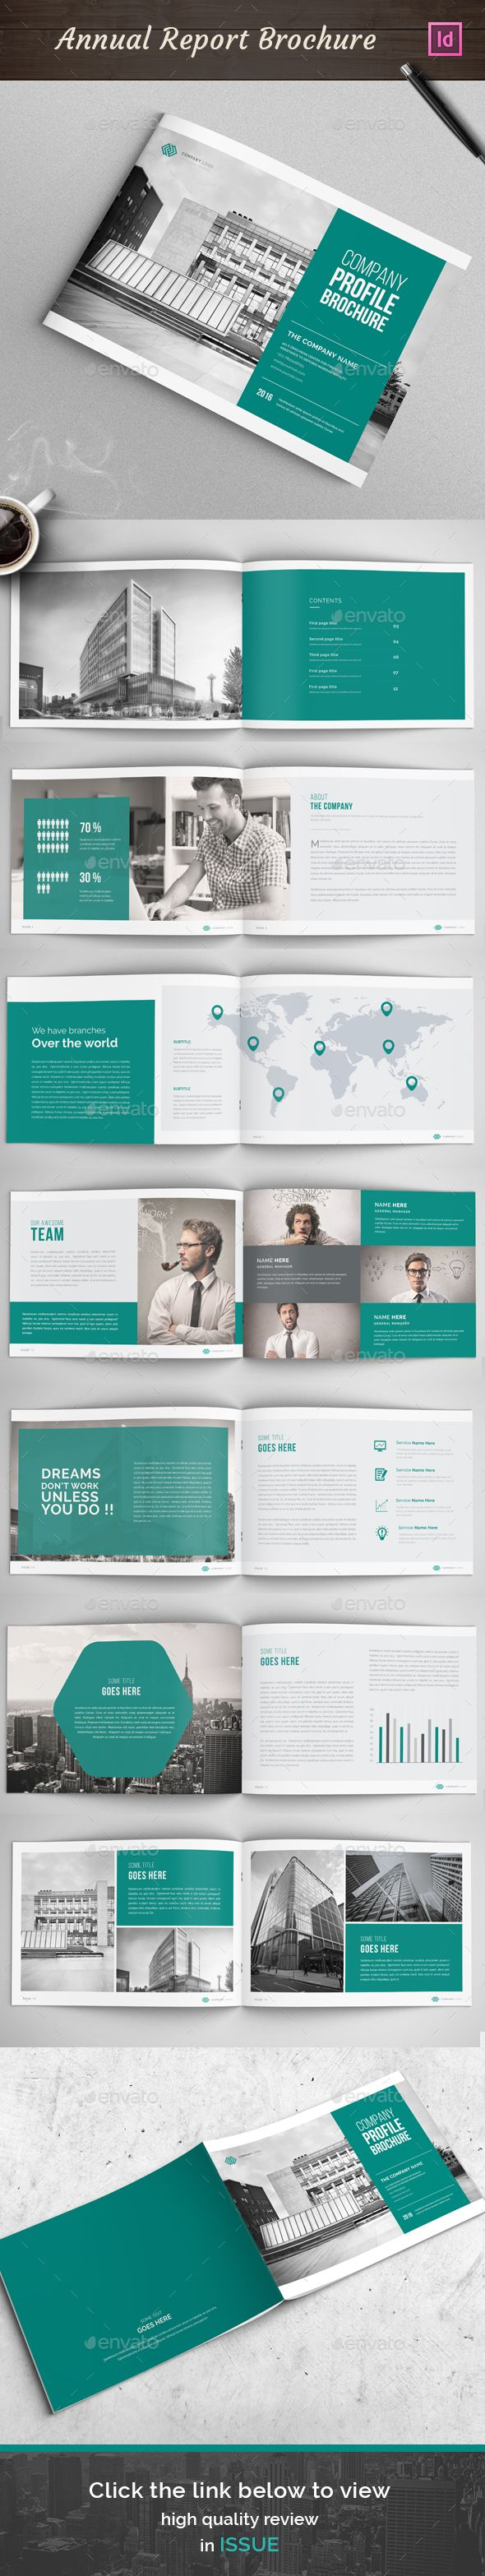 Annual Report Brochure Template InDesign INDD. Download here: http://graphicriver.net/item/annual-report-brochure-02/15502792?ref=ksioks